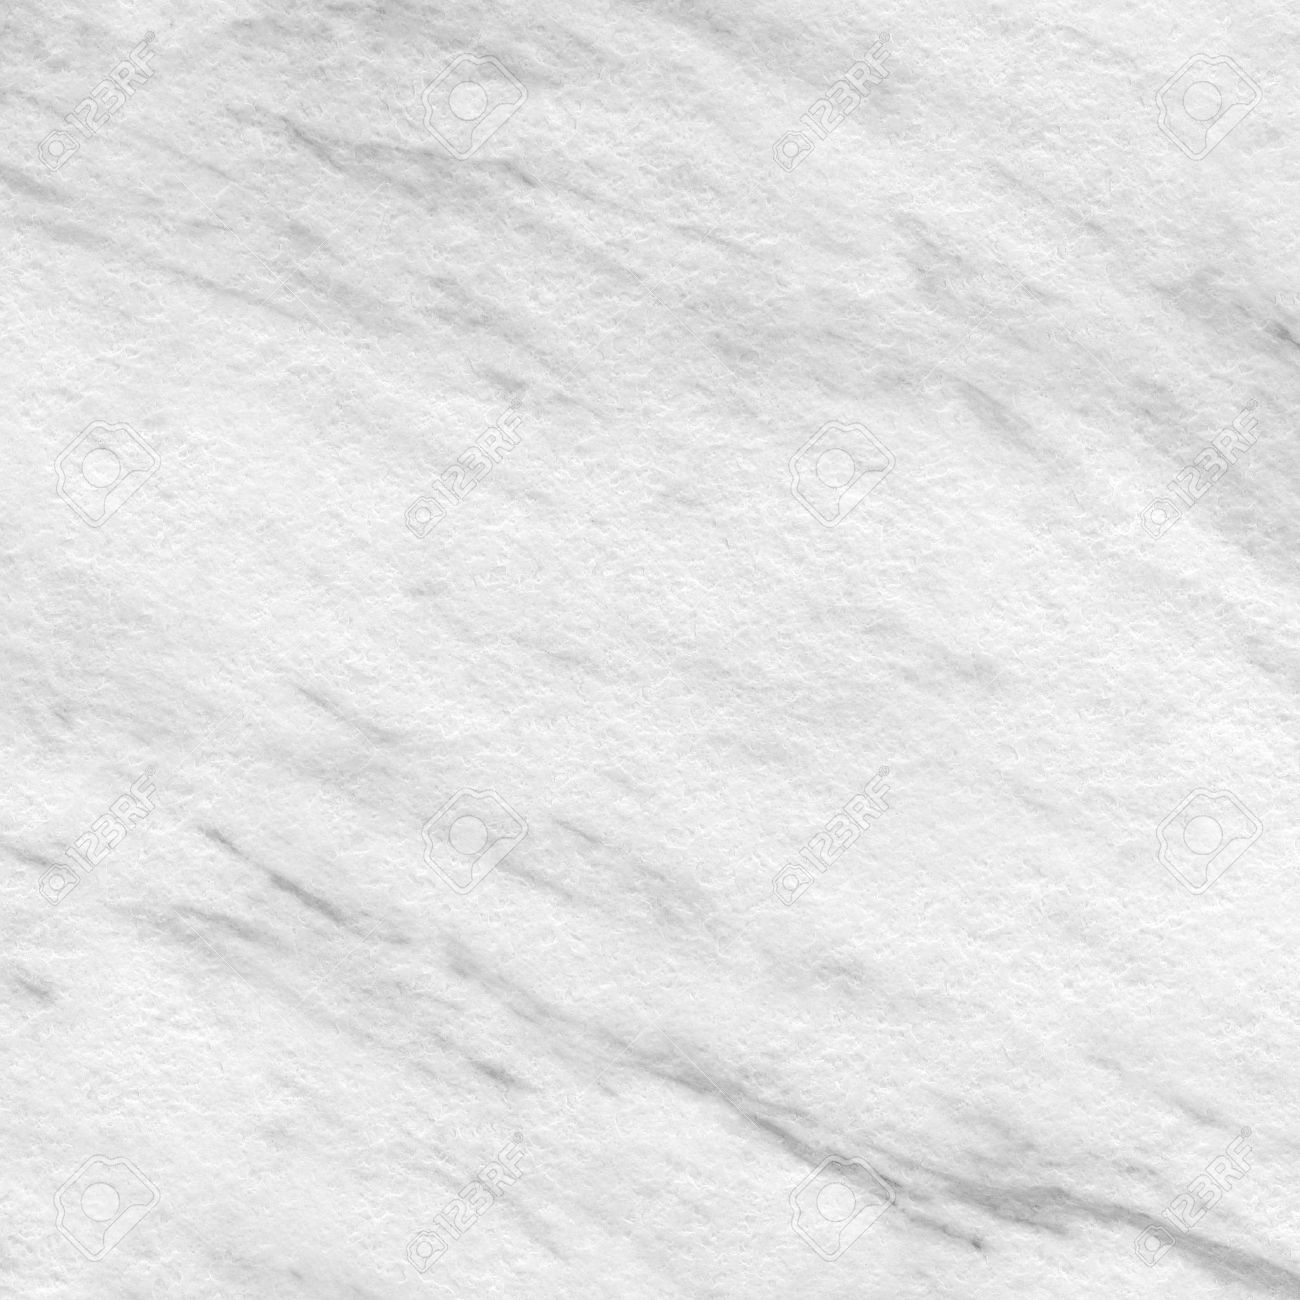 white marble texture background (High resolution) Stock Photo - 15612502